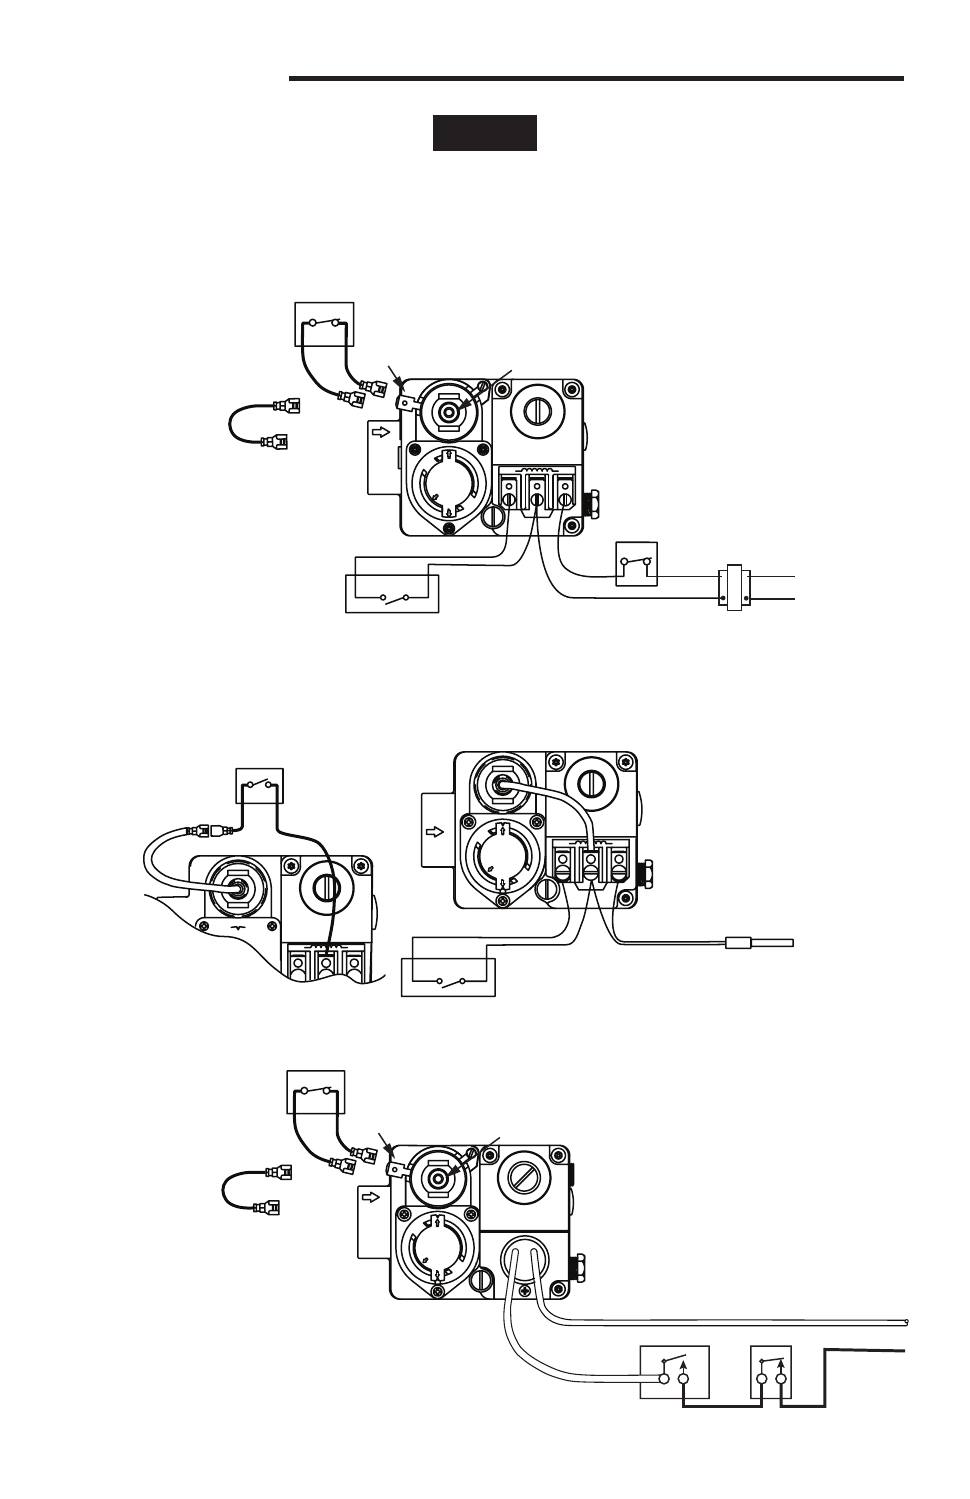 Wiring Diagram For Ga Valve Manual Guide